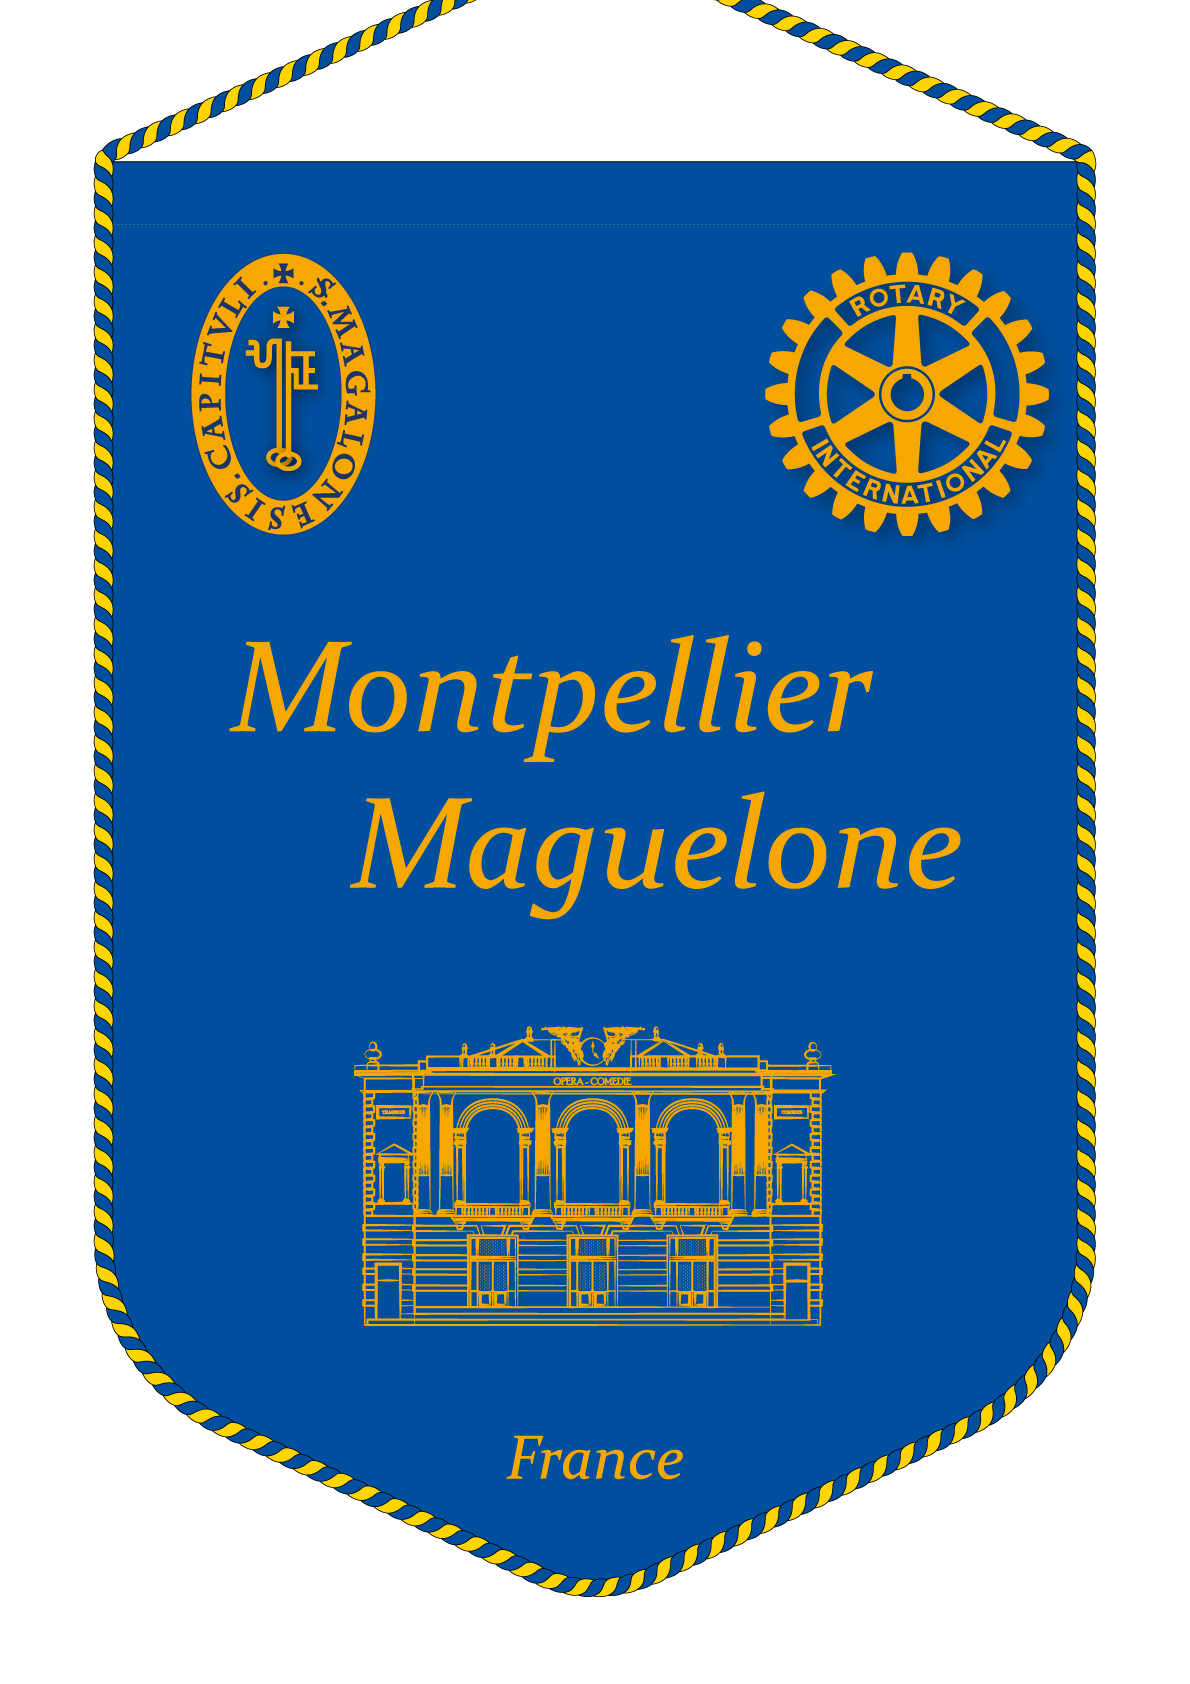 FANION ROTARY CLUB MONTPELLIER MAGUELONE